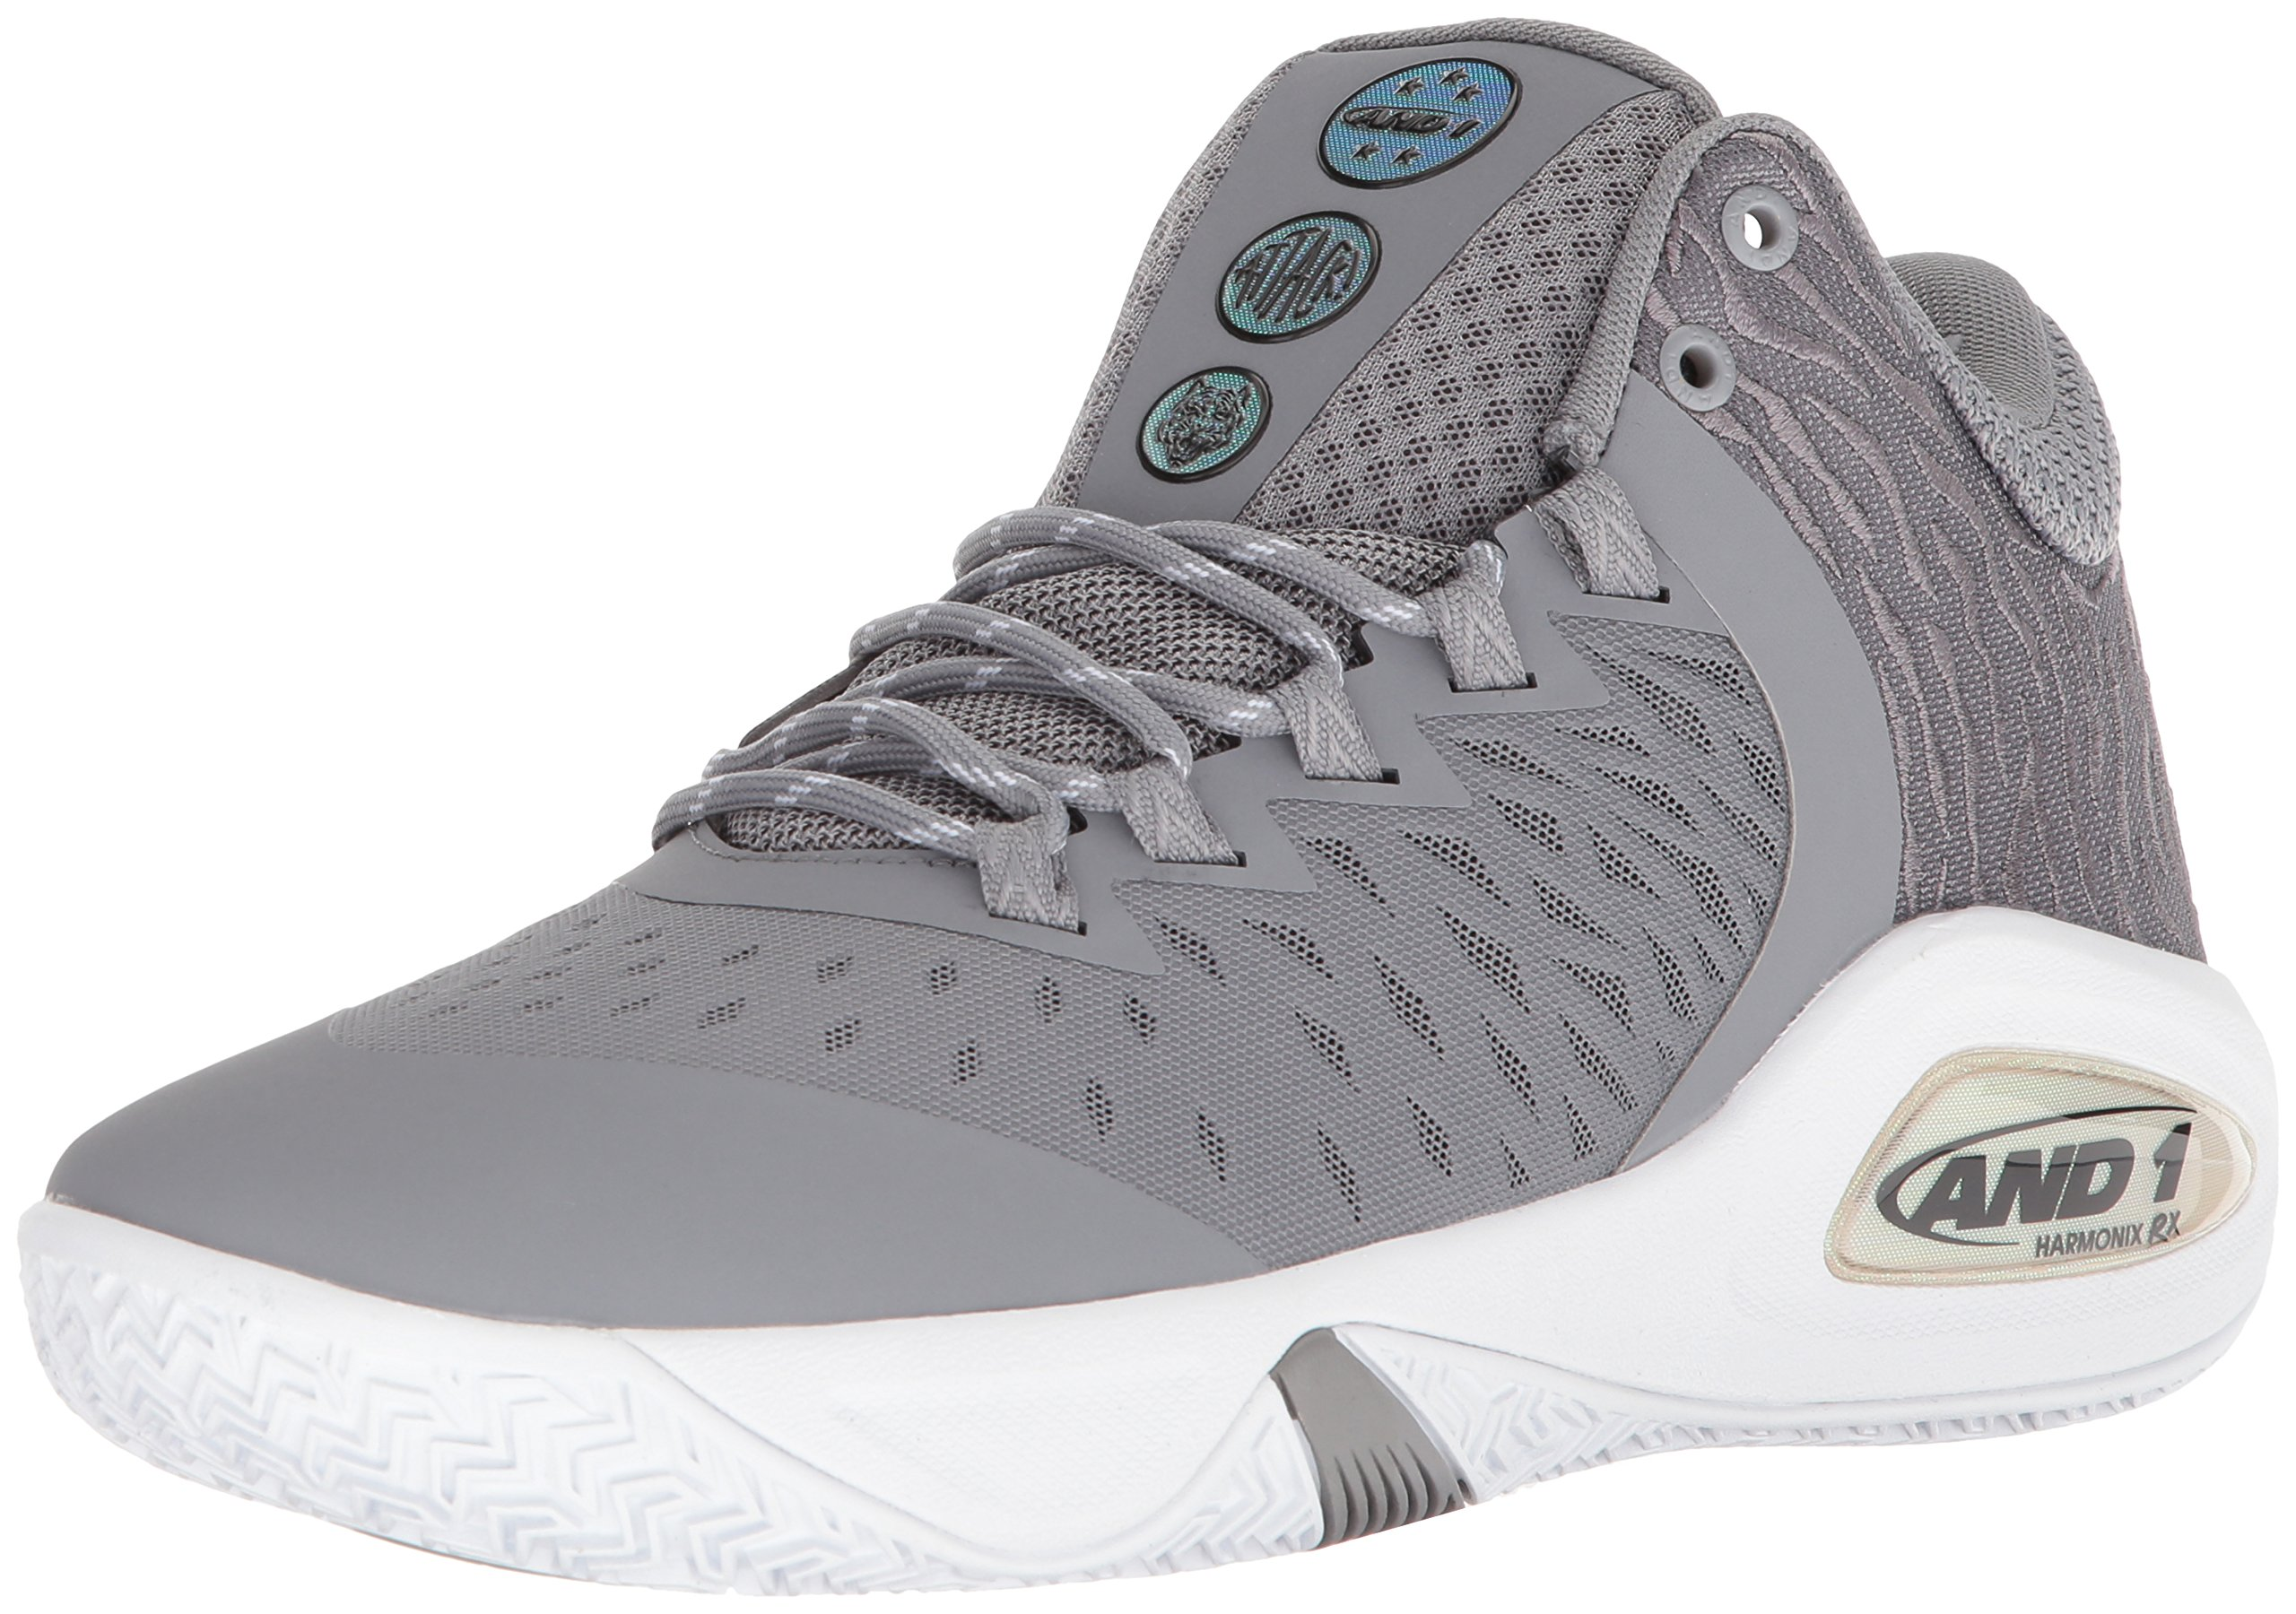 AND 1 Men's Attack Mid Basketball Shoe, Alloy/Super